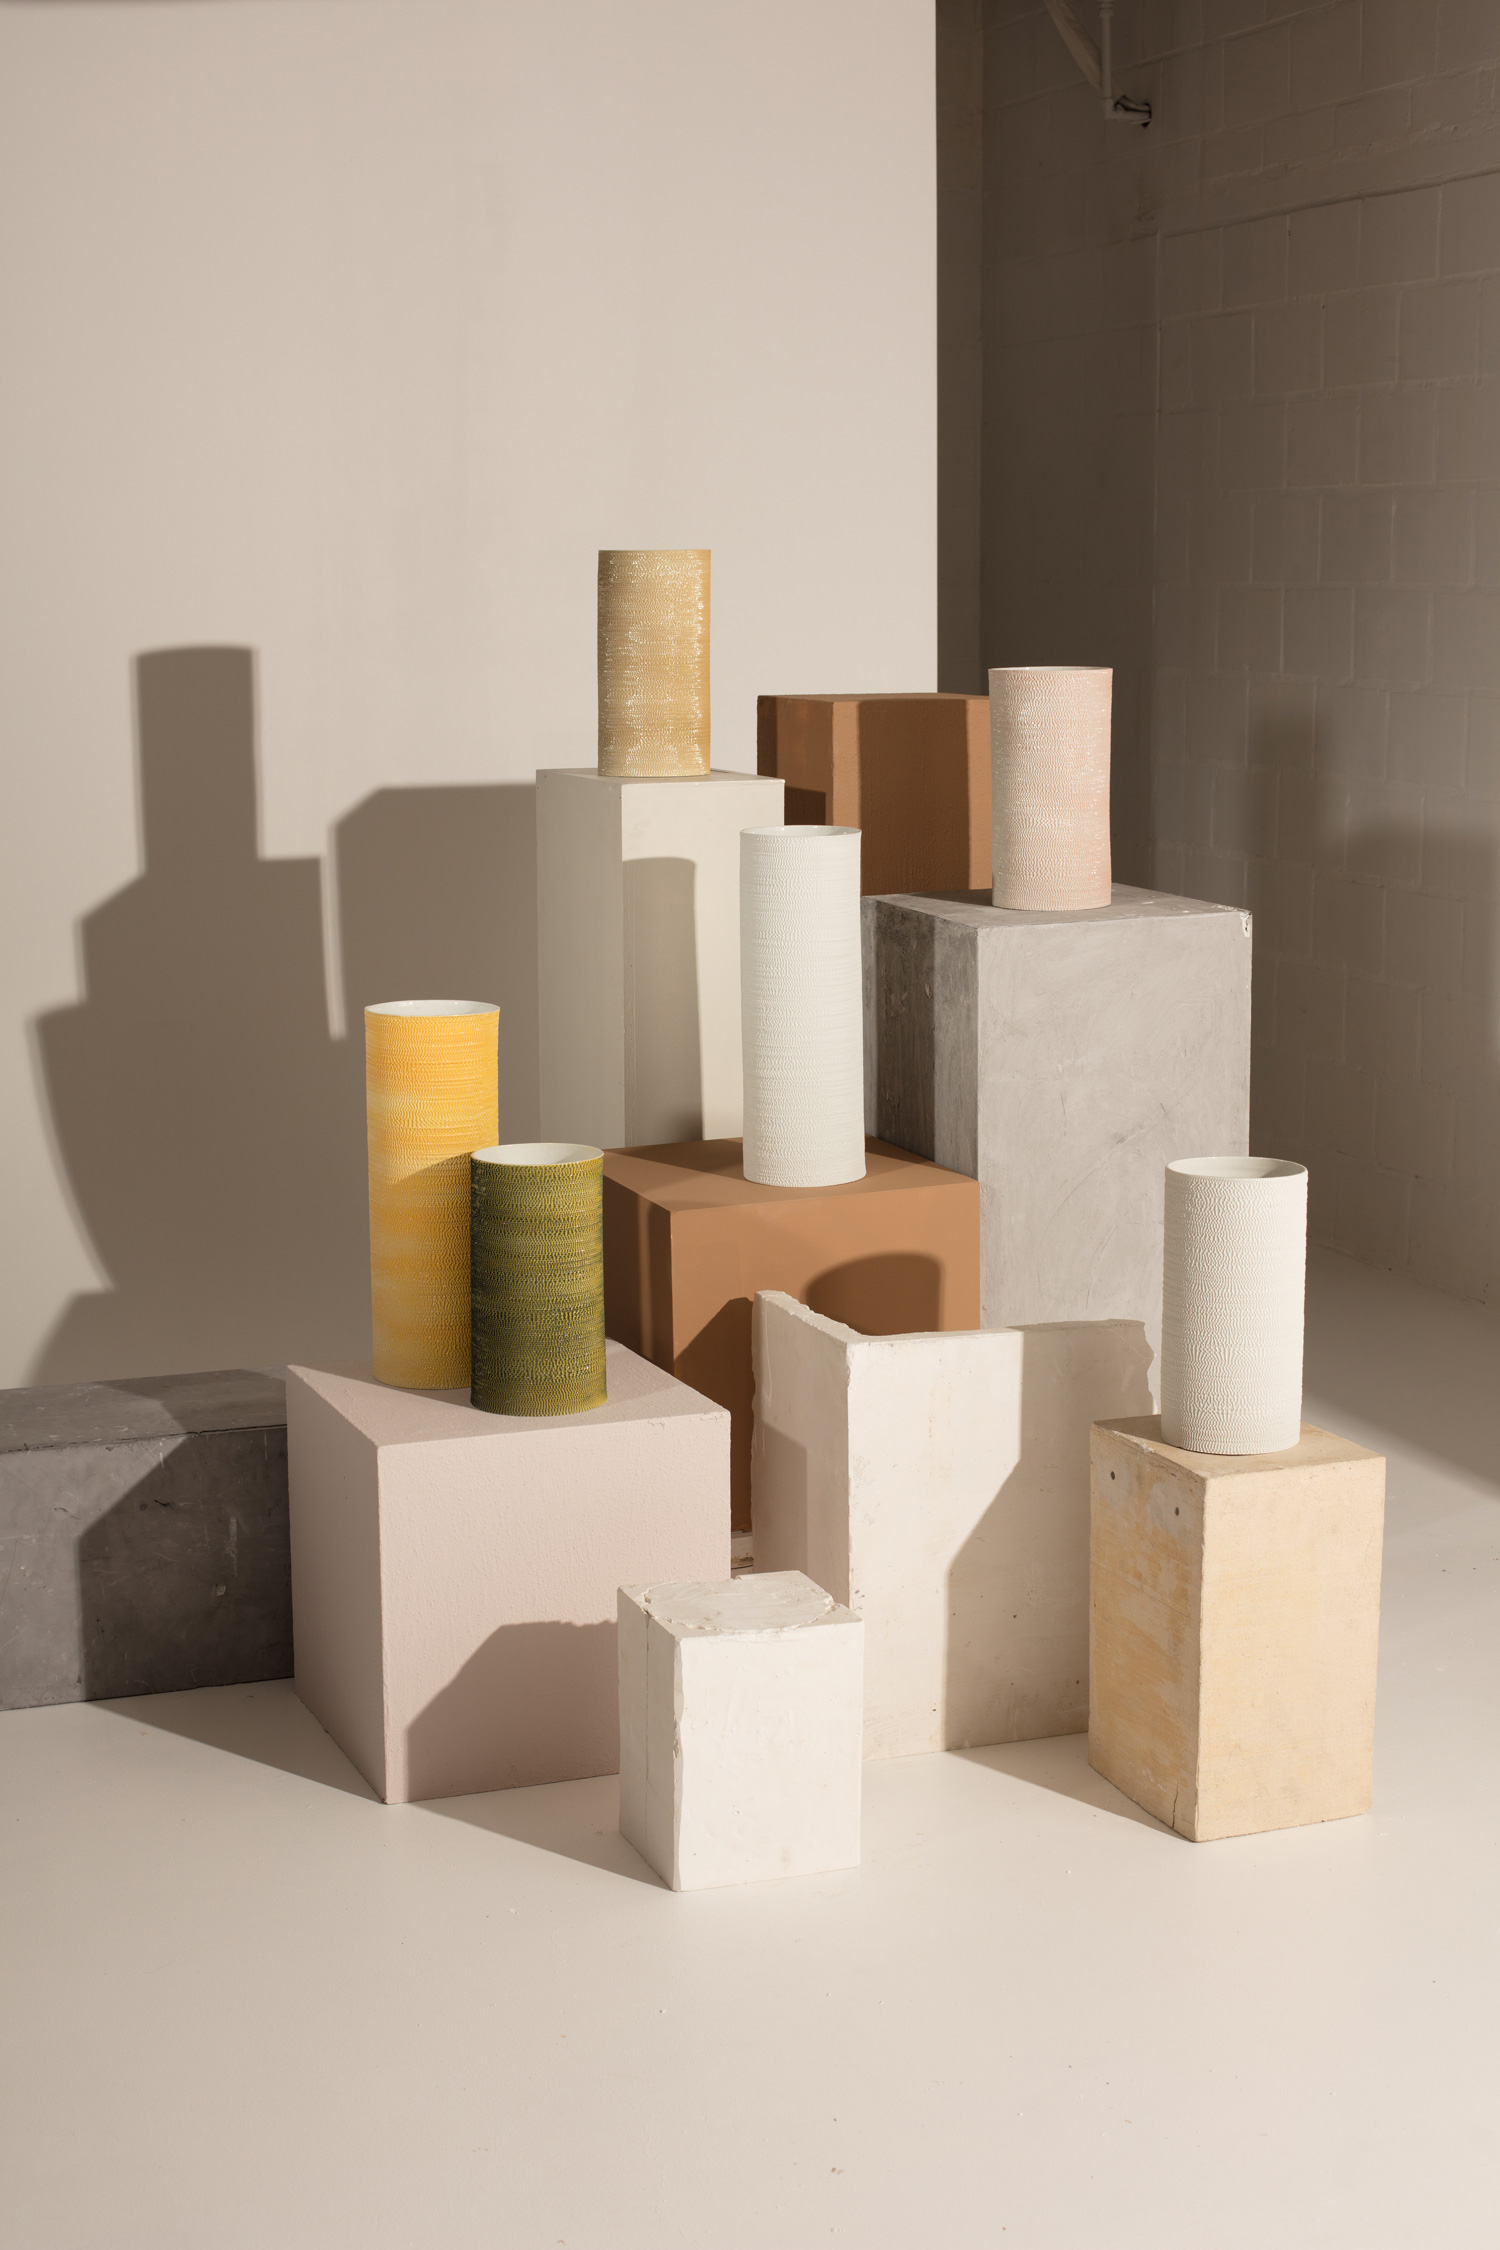 Bole Vases by Studio Truly Truly, Australian Designers Milan | Yellowtrace